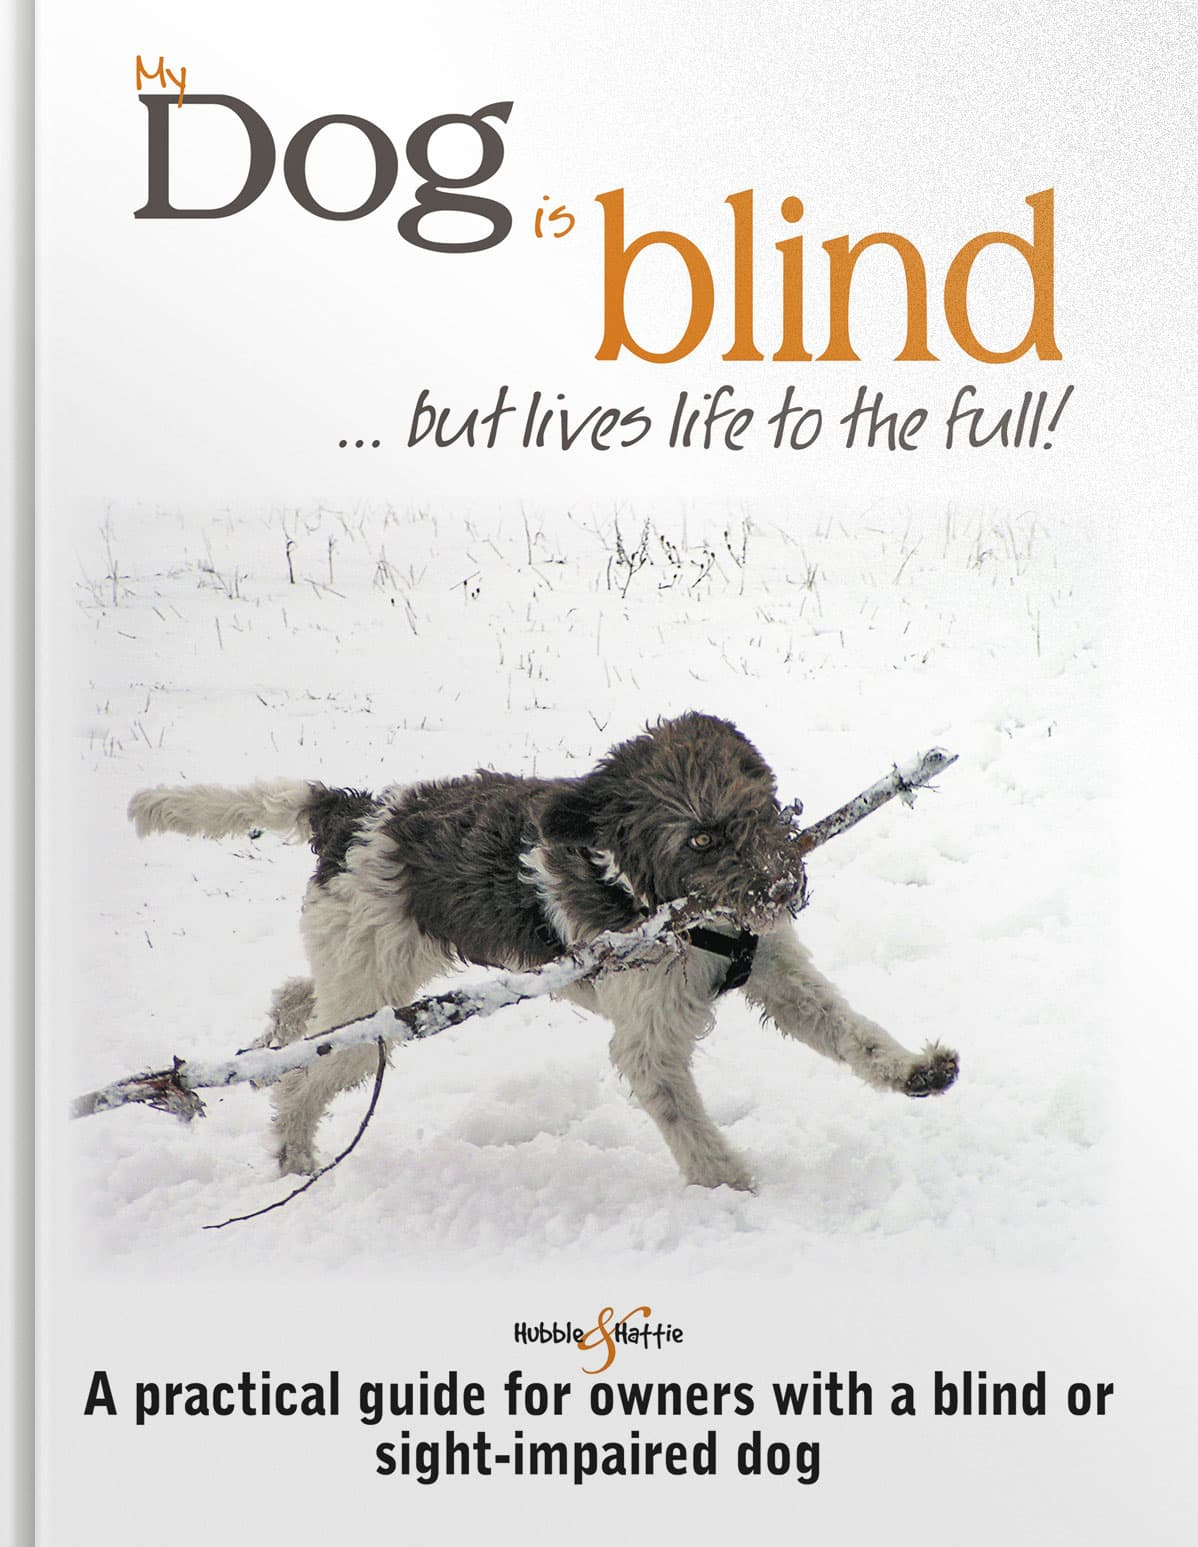 My dog is blind … but lives life to the full!